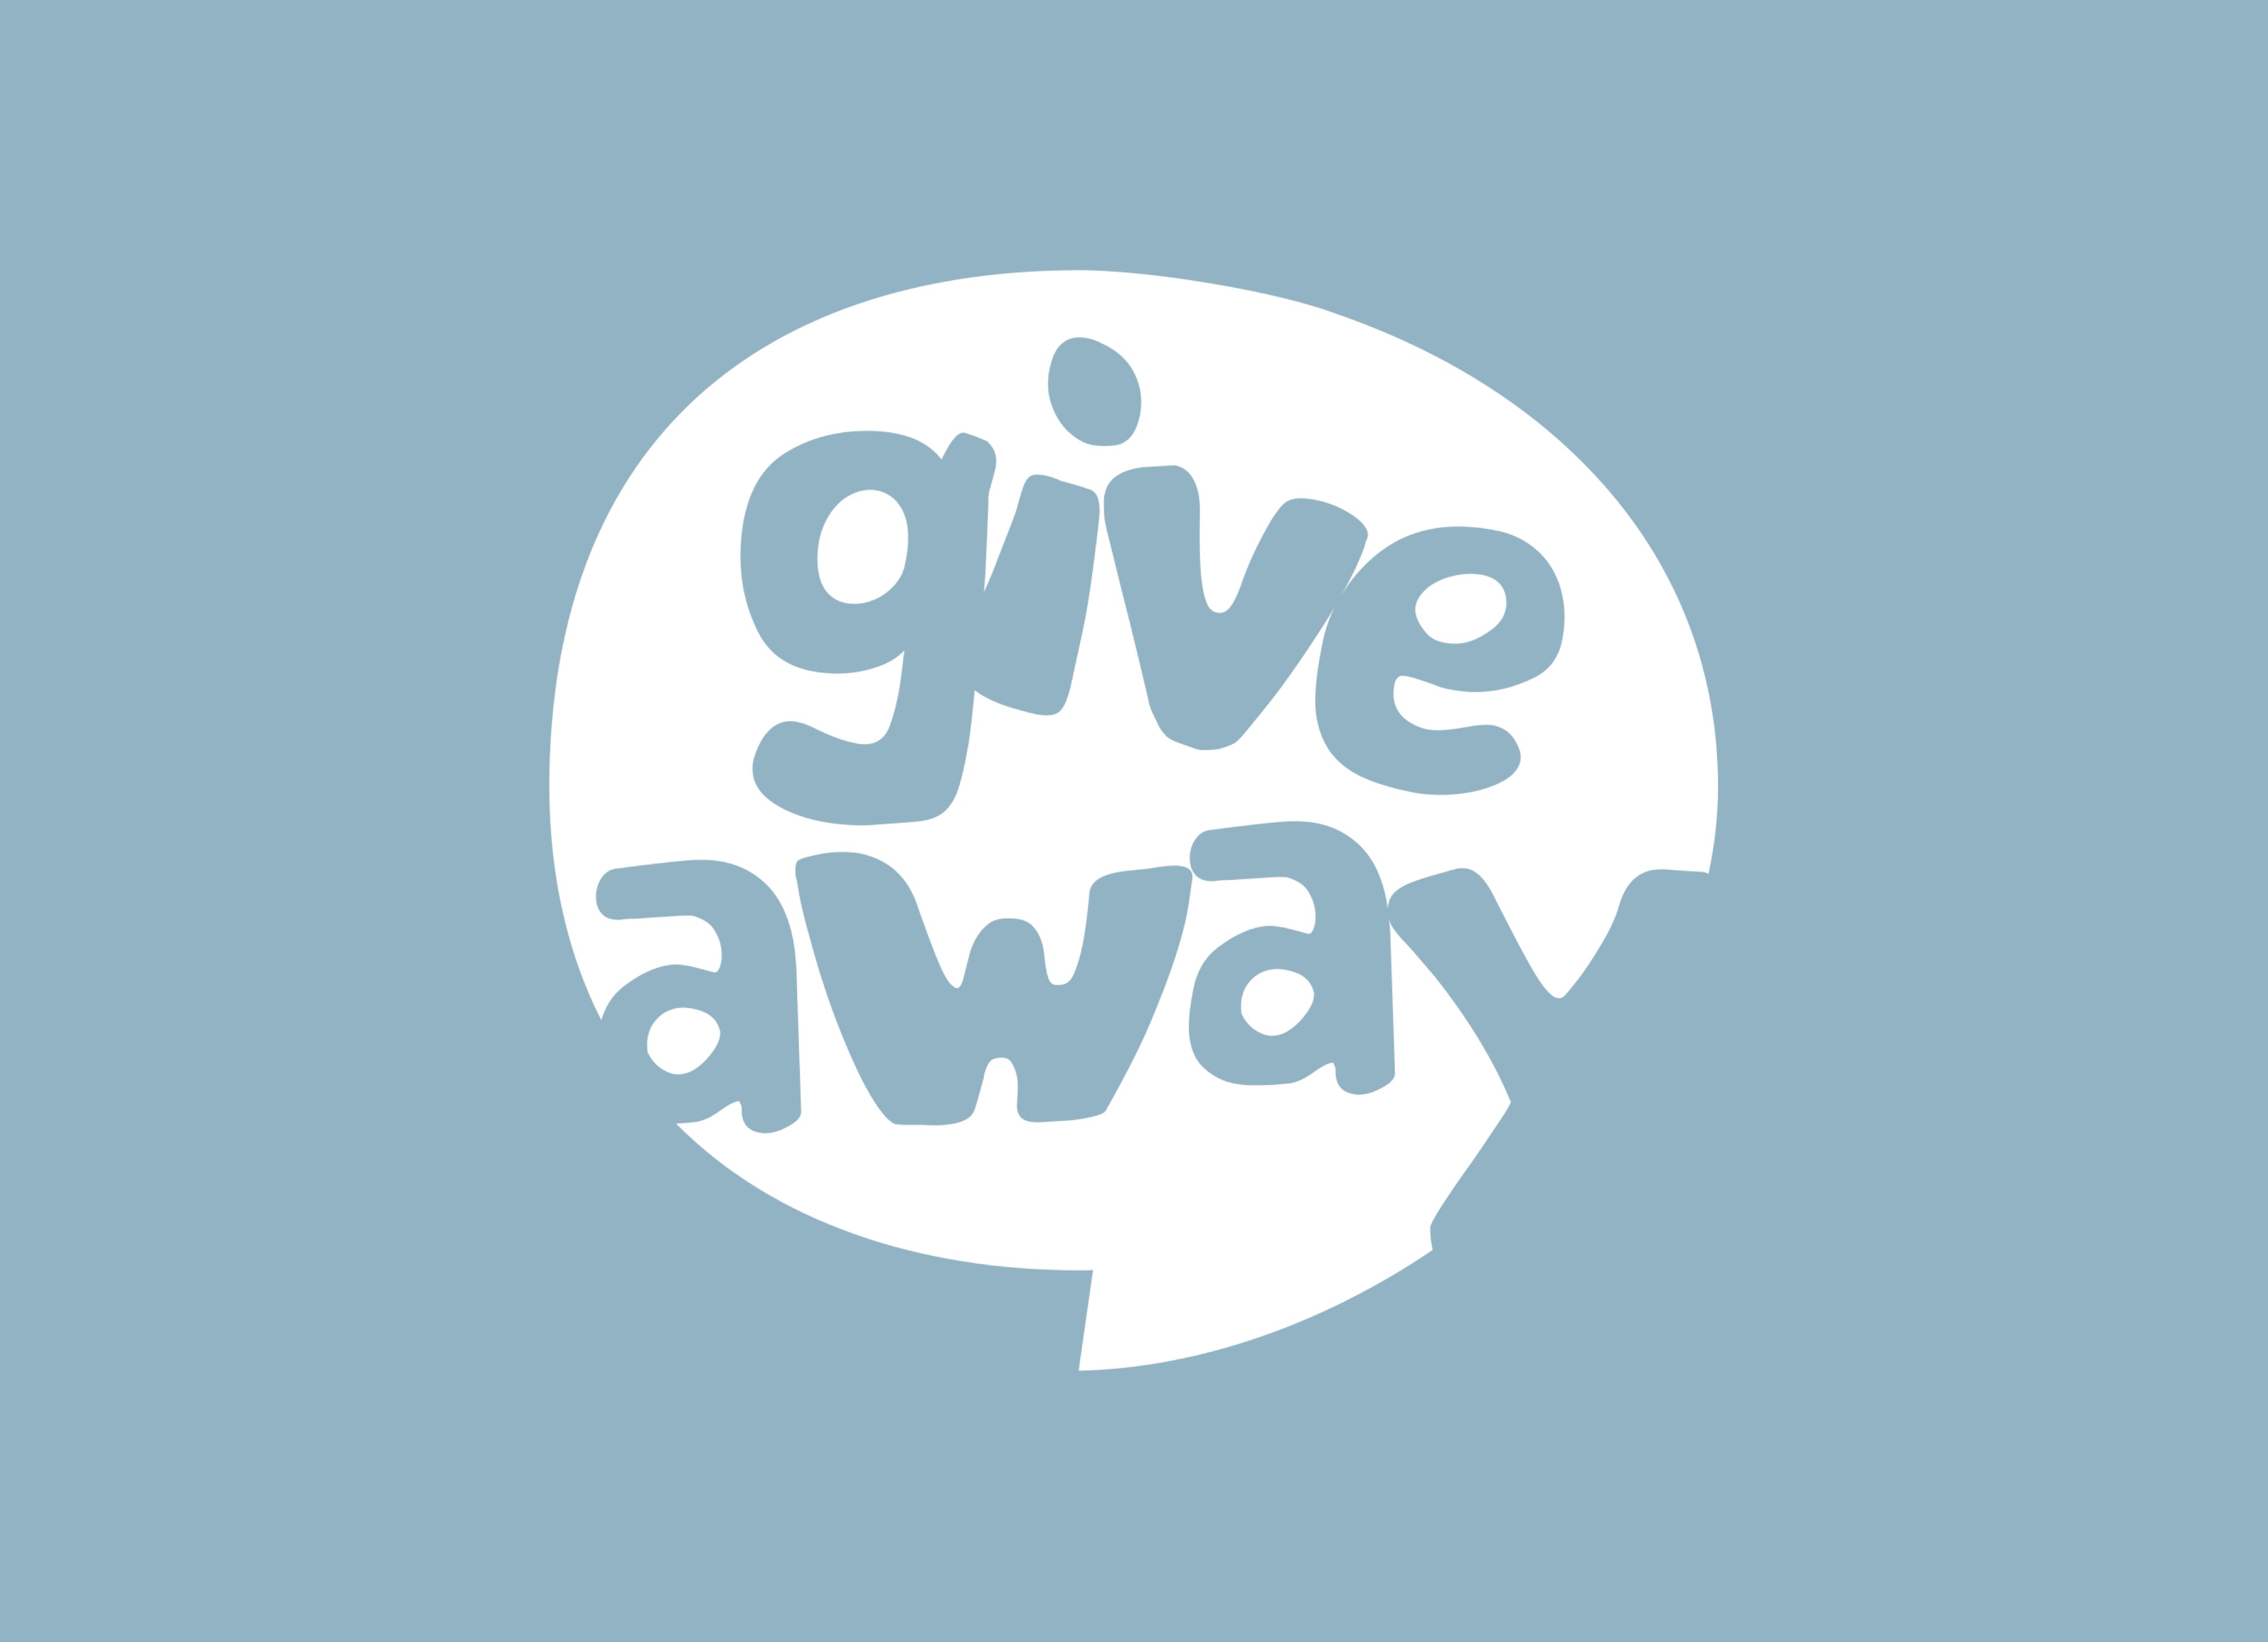 Give-away Haak je happy!